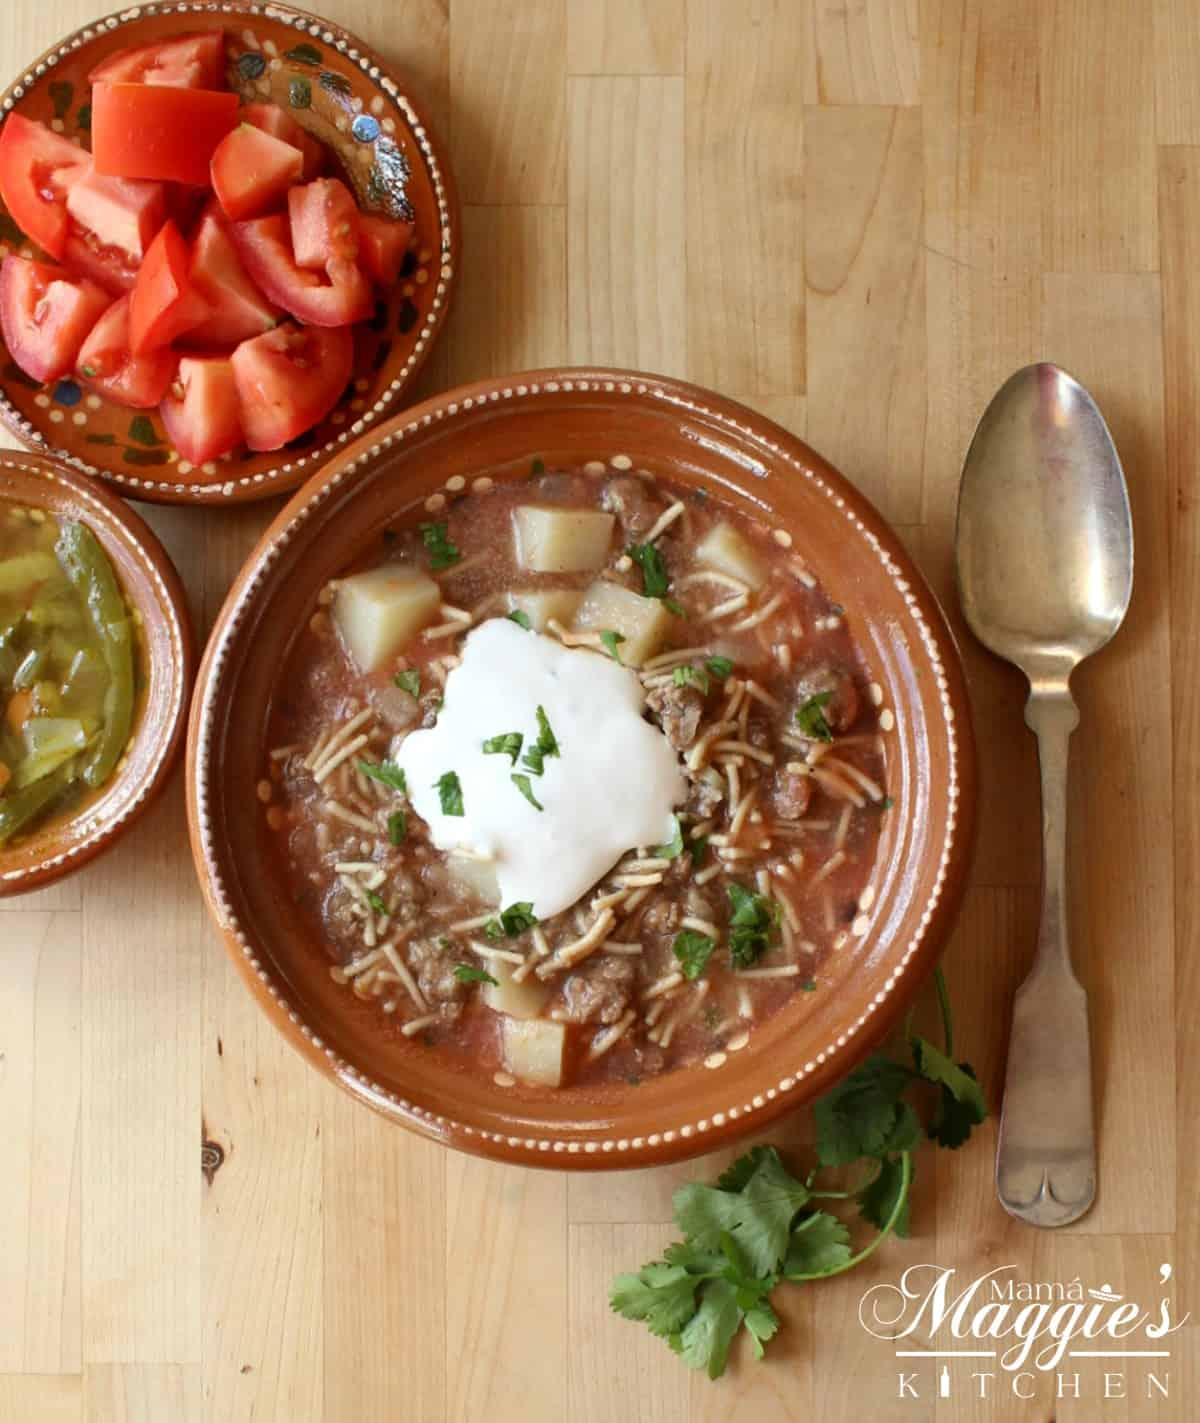 A decorative clay bowl of Fideo con Carne topped with sour cream next to a spoon and tomatoes.